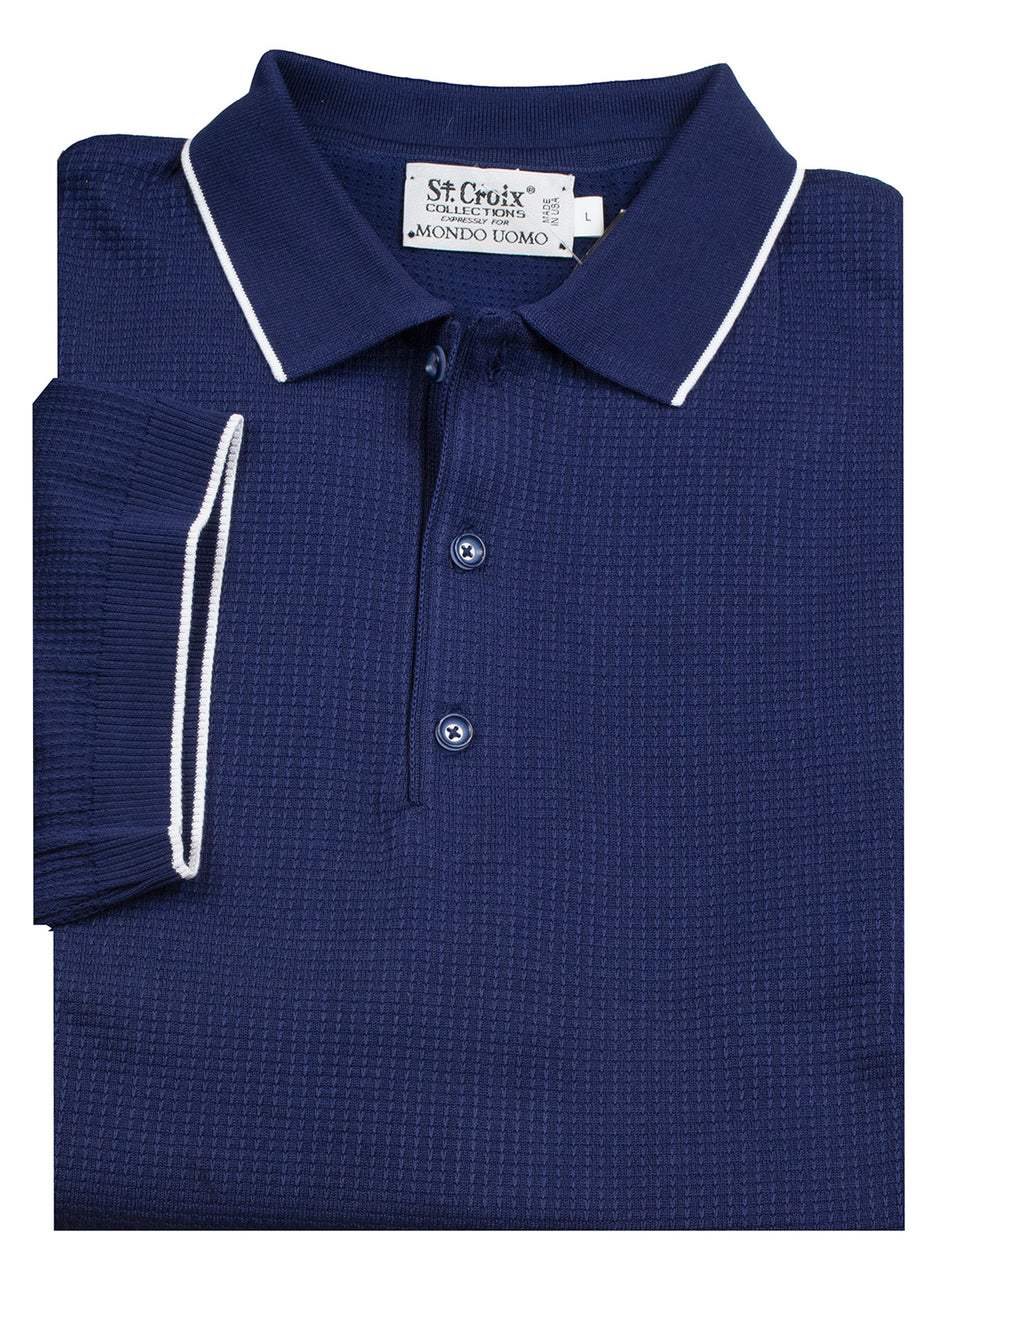 St Croix Polo Knit Navy Waffle